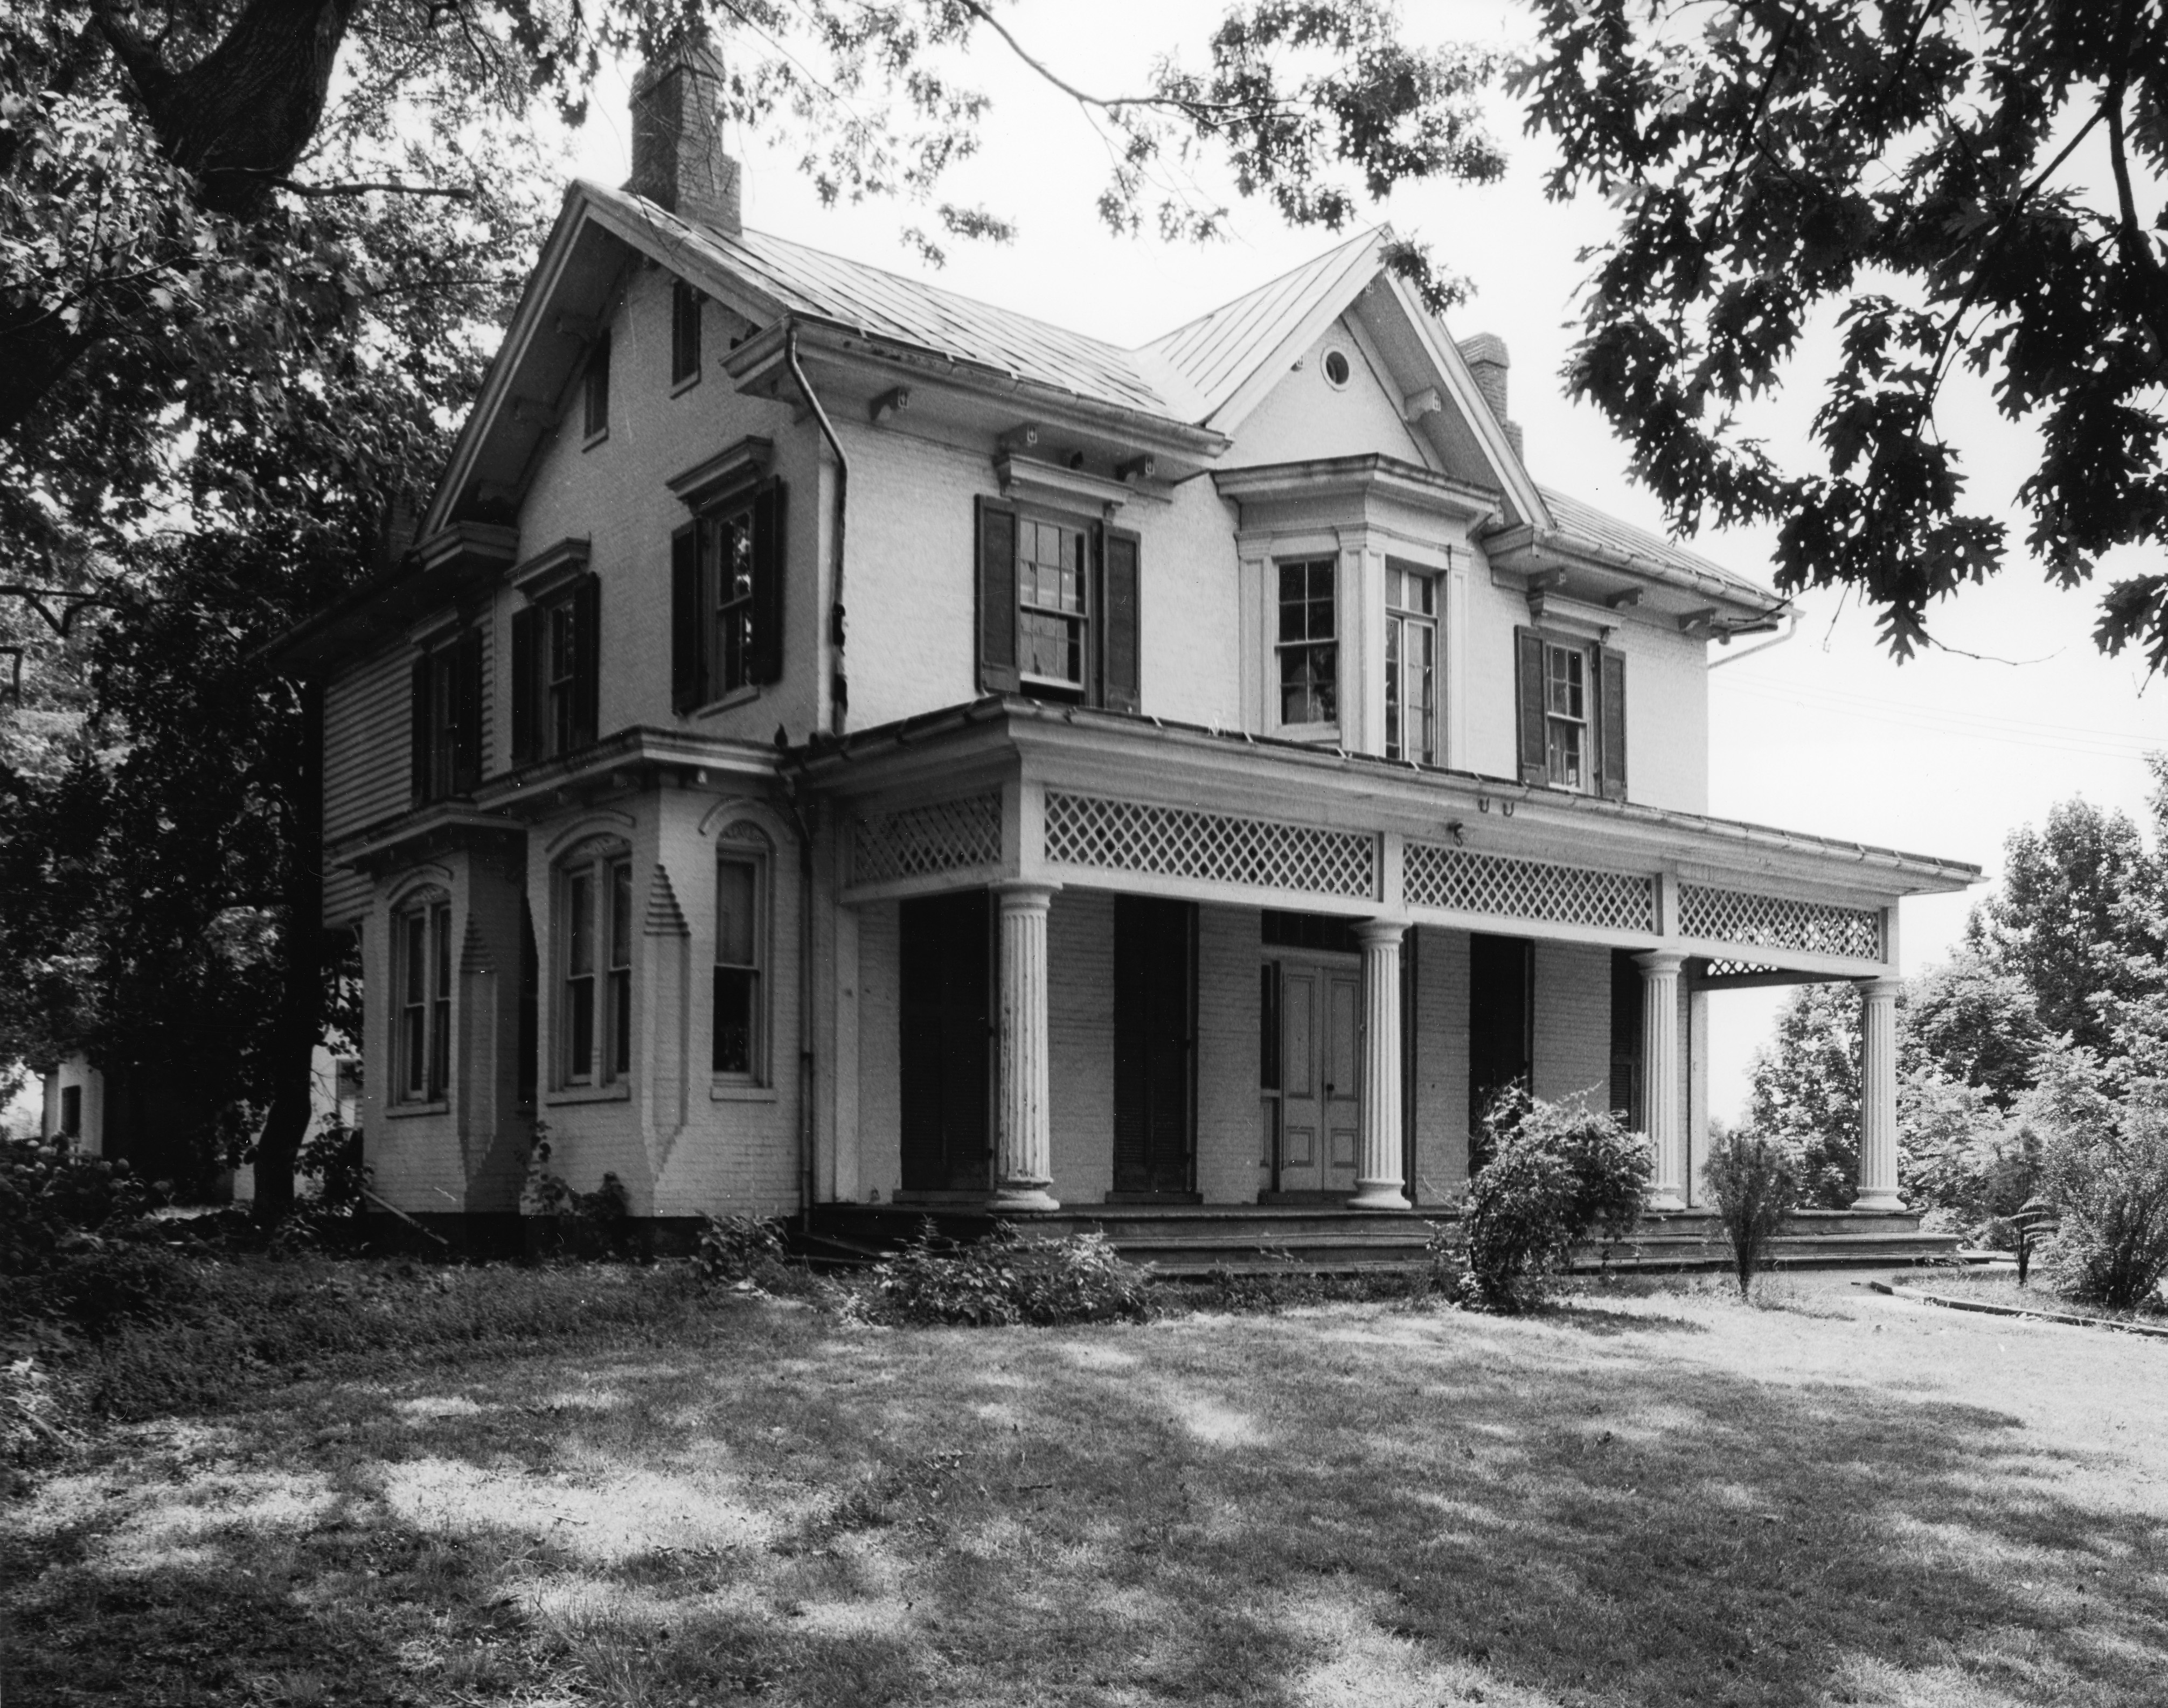 Douglass' Washington D.C. home, Cedar Hill. (Jack Rottier/National Park Service/U.S. Dept. of the Interior/Hulton Archive/Getty Images)